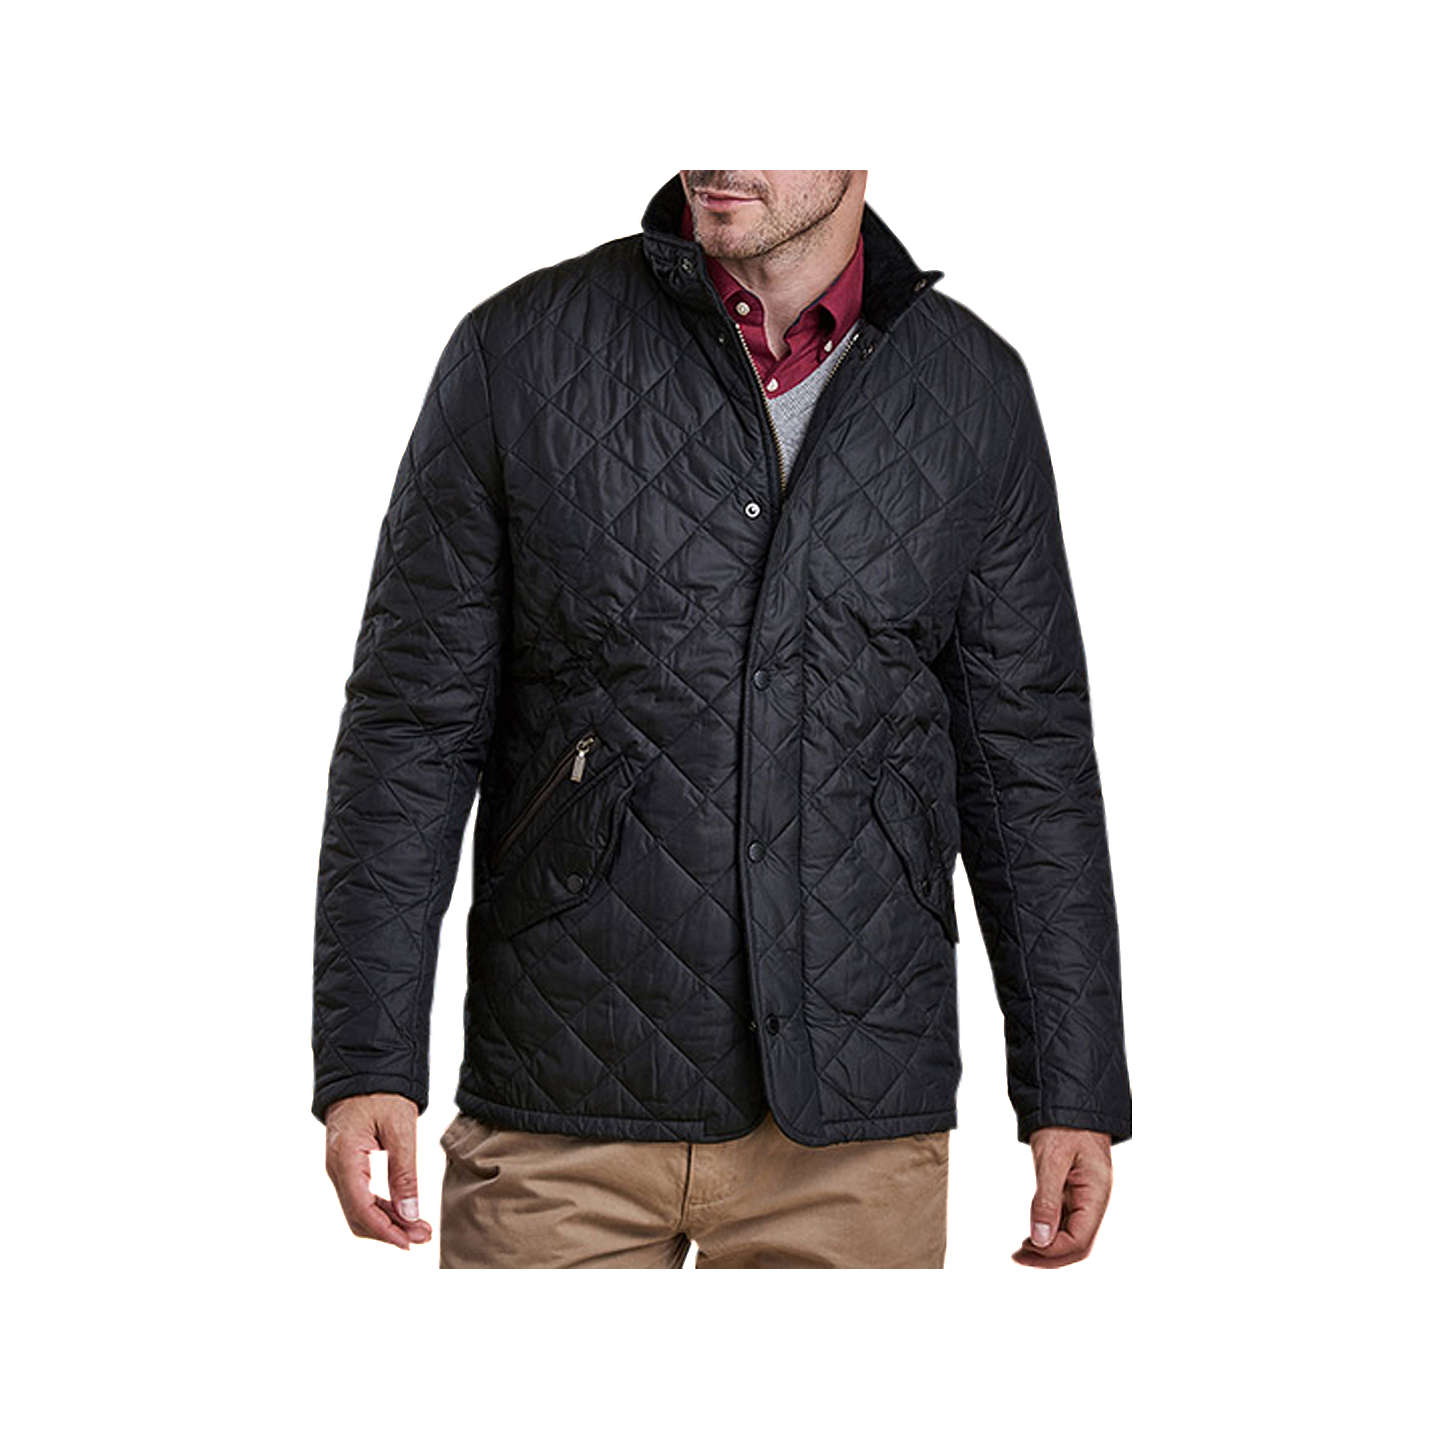 quilt quilted black p badrhino jacket